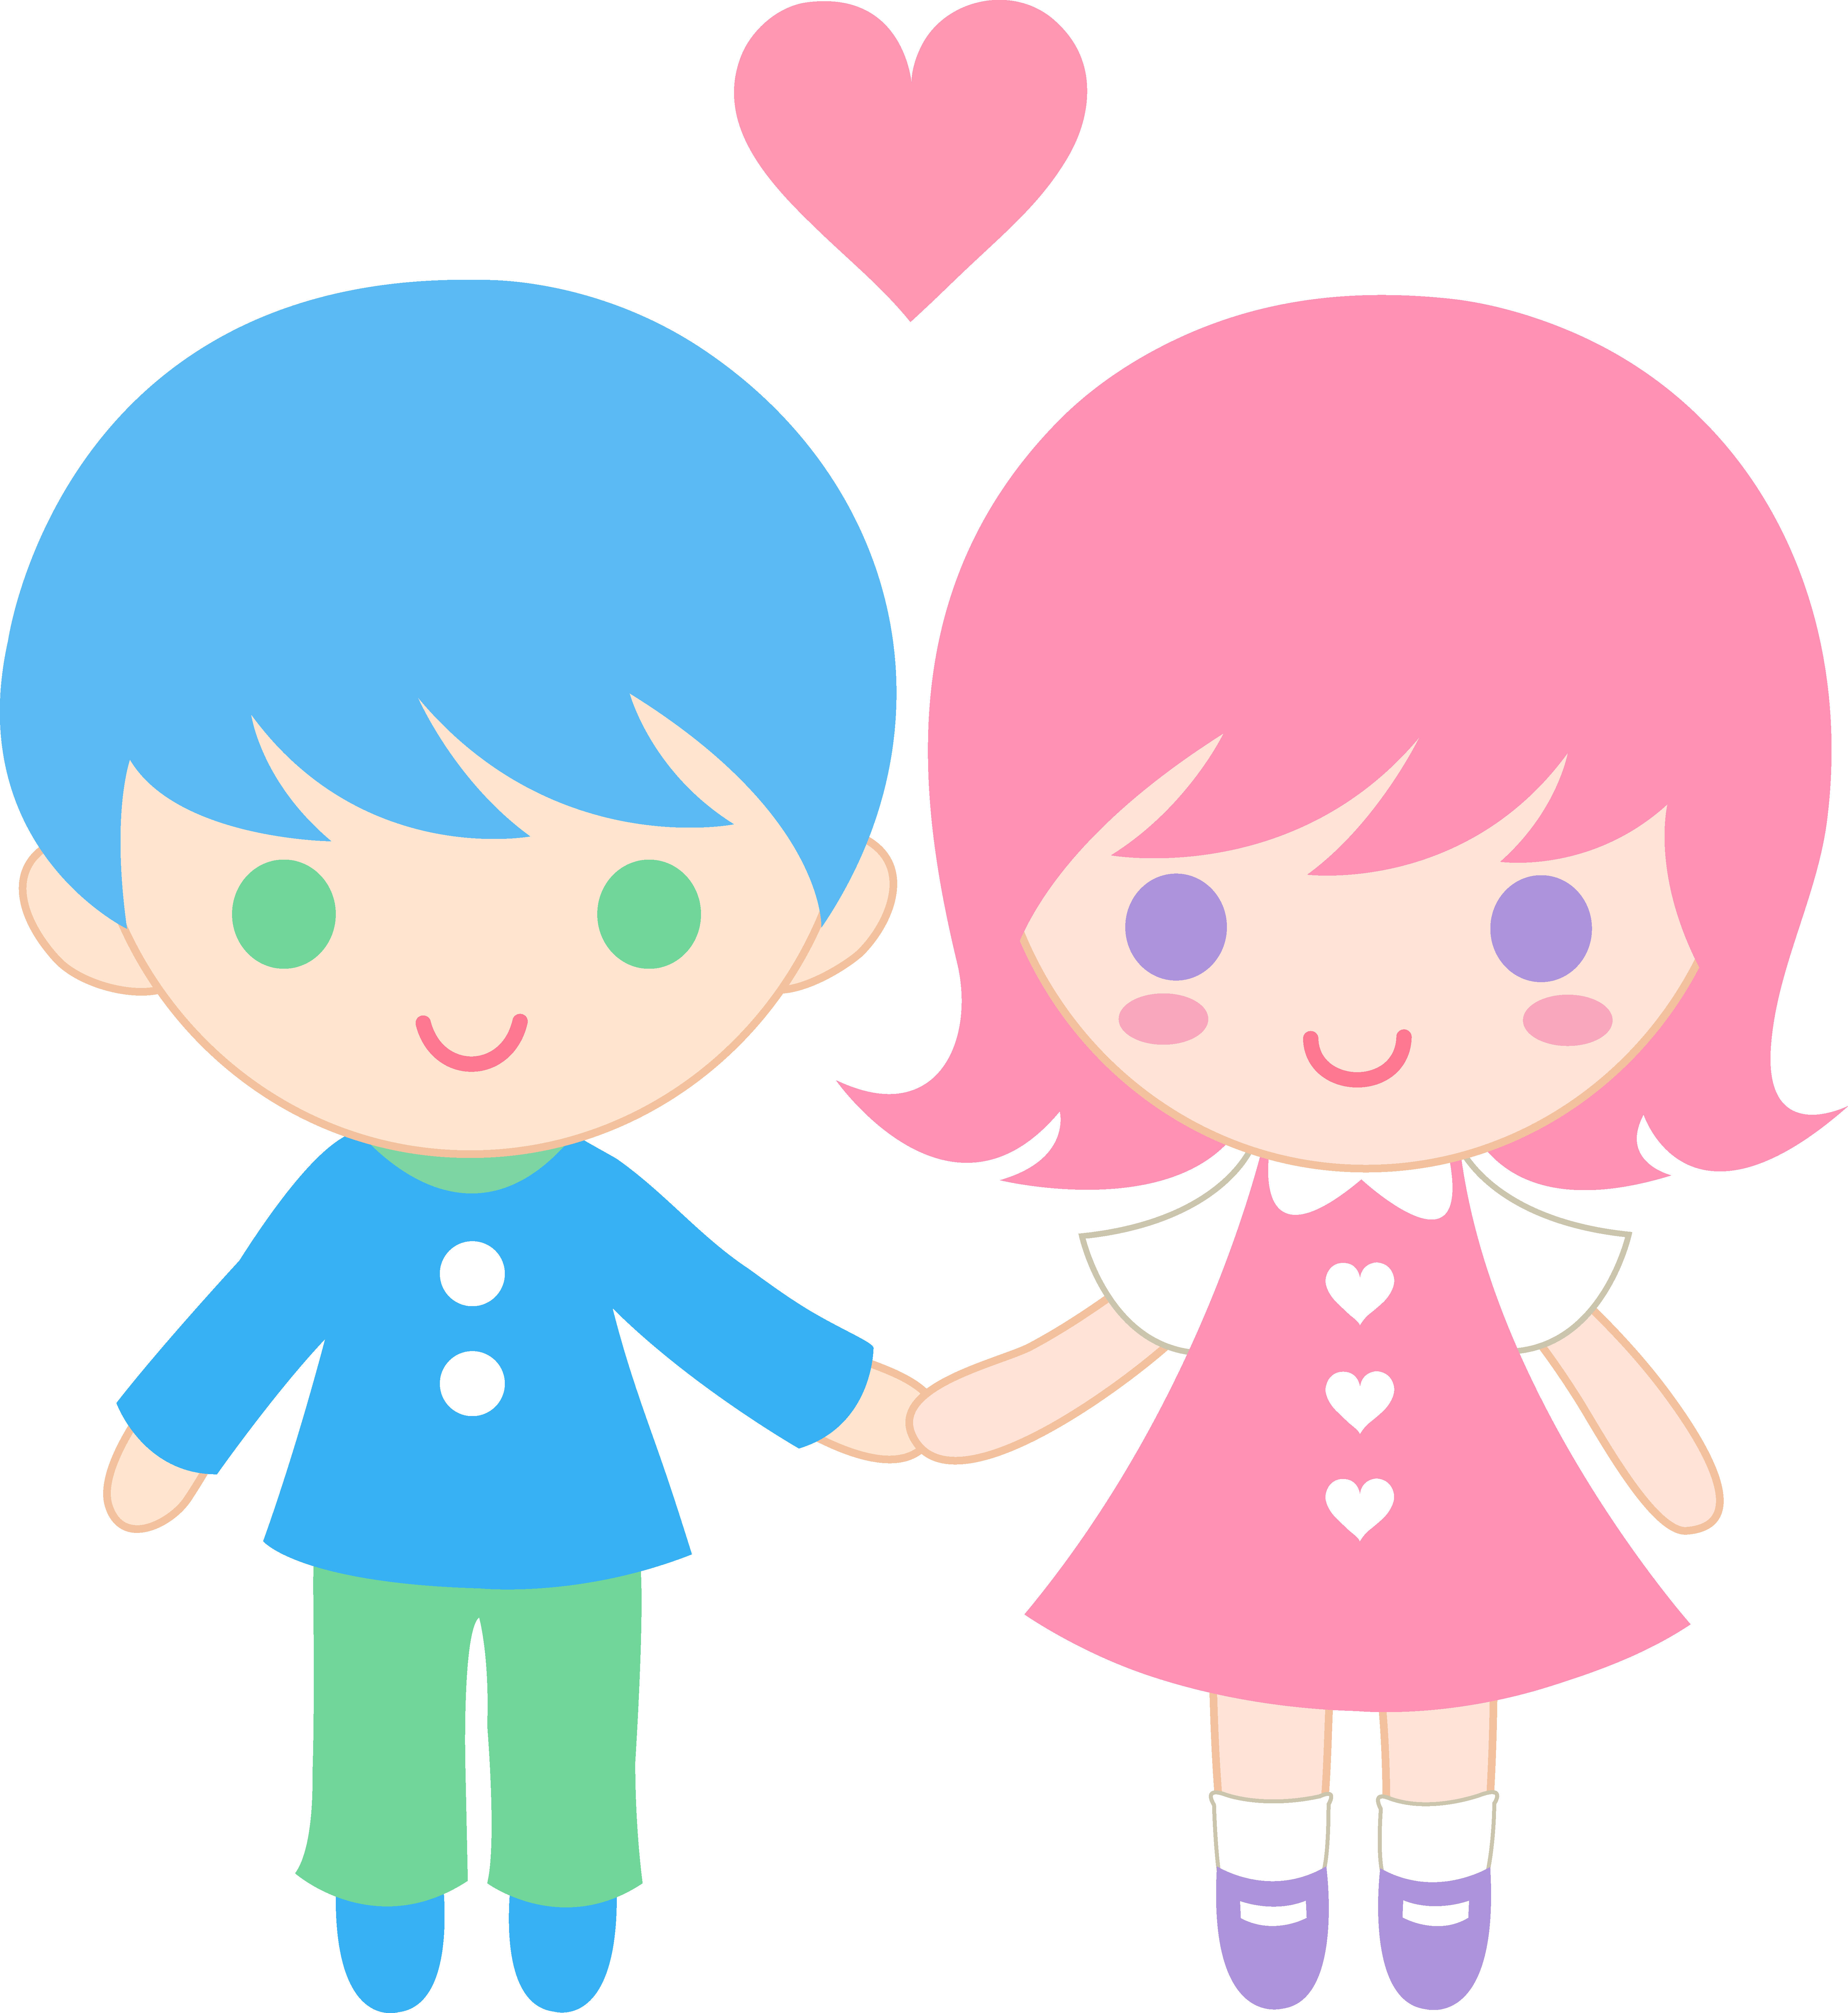 Valentine clipart cute. Love couple pencil and